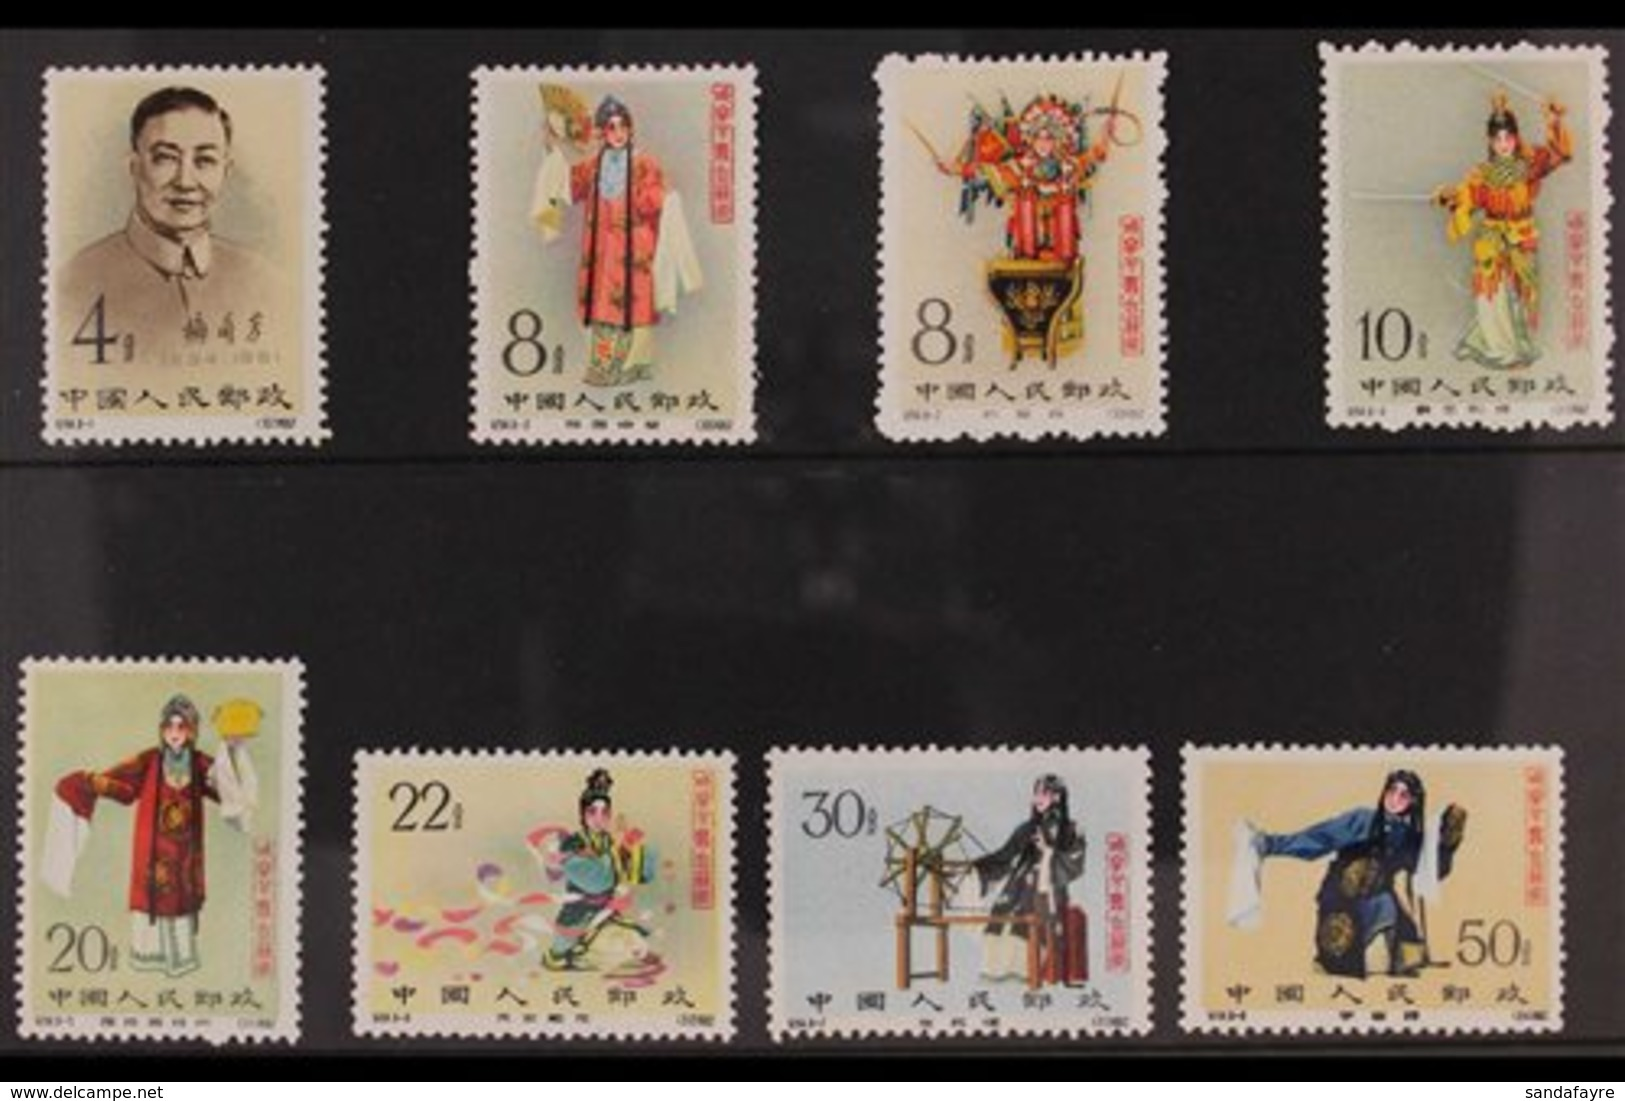 1962 Stage Art Of Mei Lan-fang Perforated Set Complete, SG 2037/2044, Very Fine Mint (8 Stamps) For More Images, Please  - China